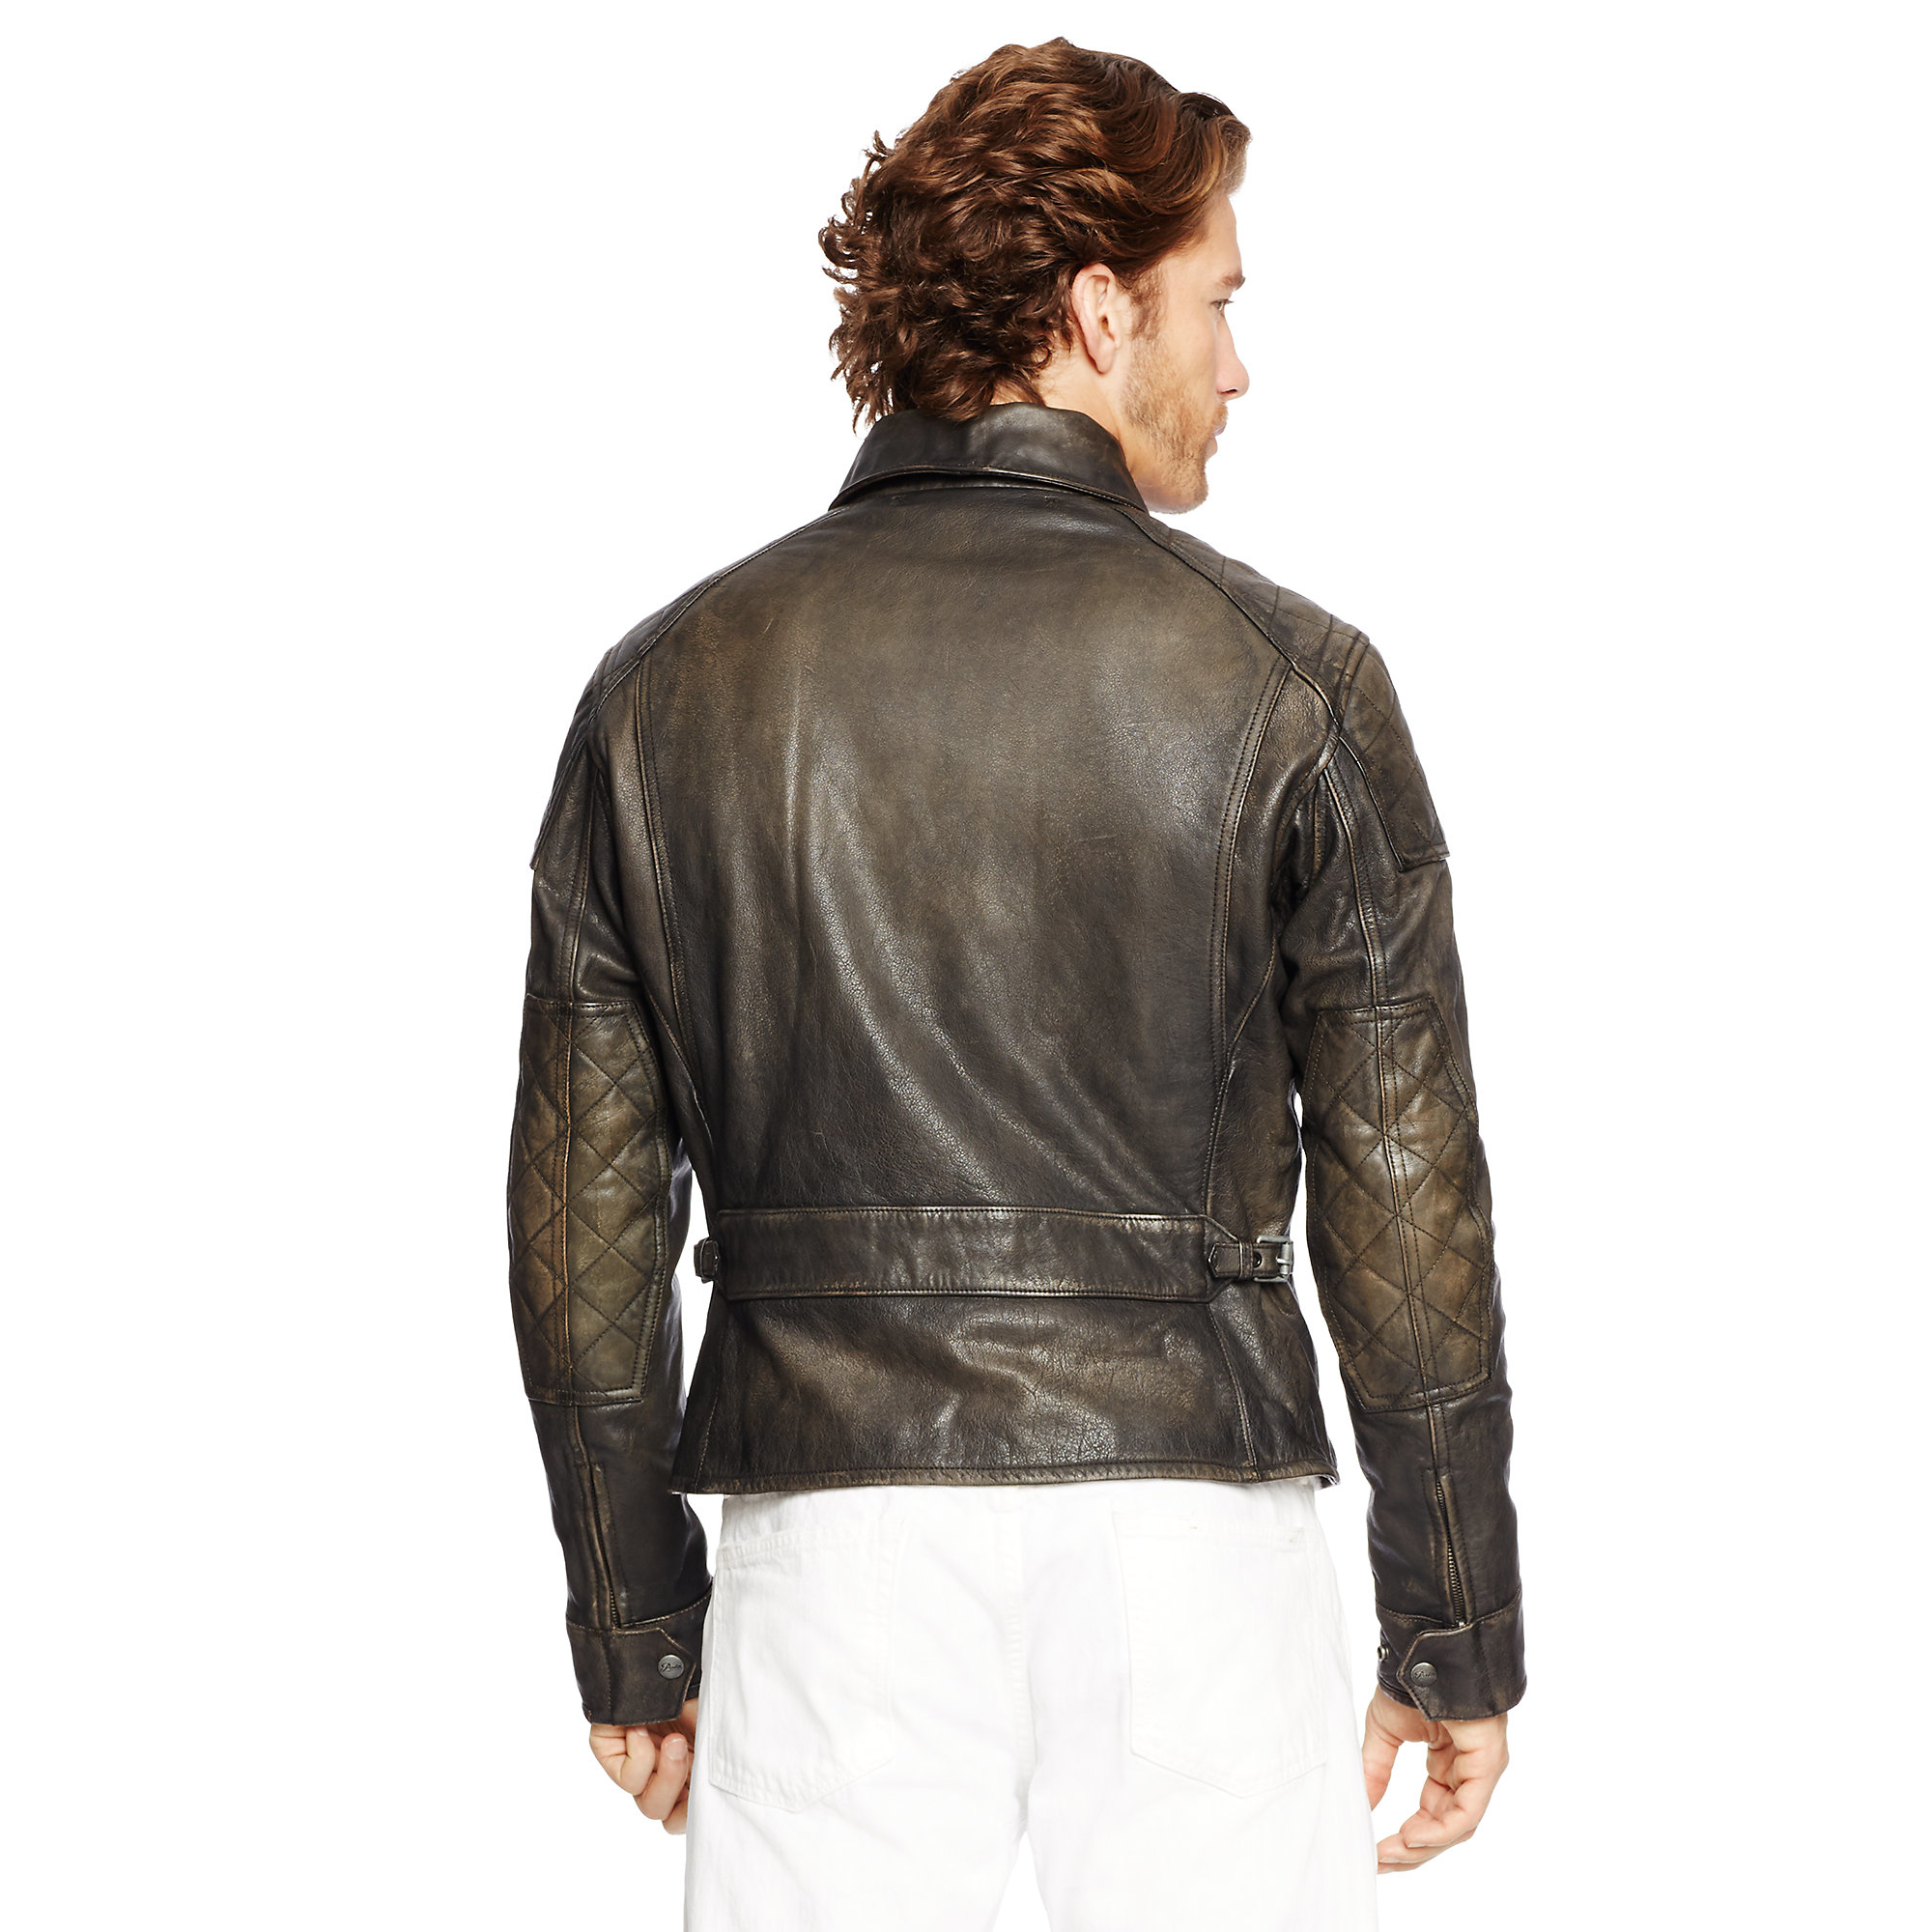 287e67508 ... Polo Black Leather Jacket  Polo Ralph Lauren Leather Motorcycle Jacket  In